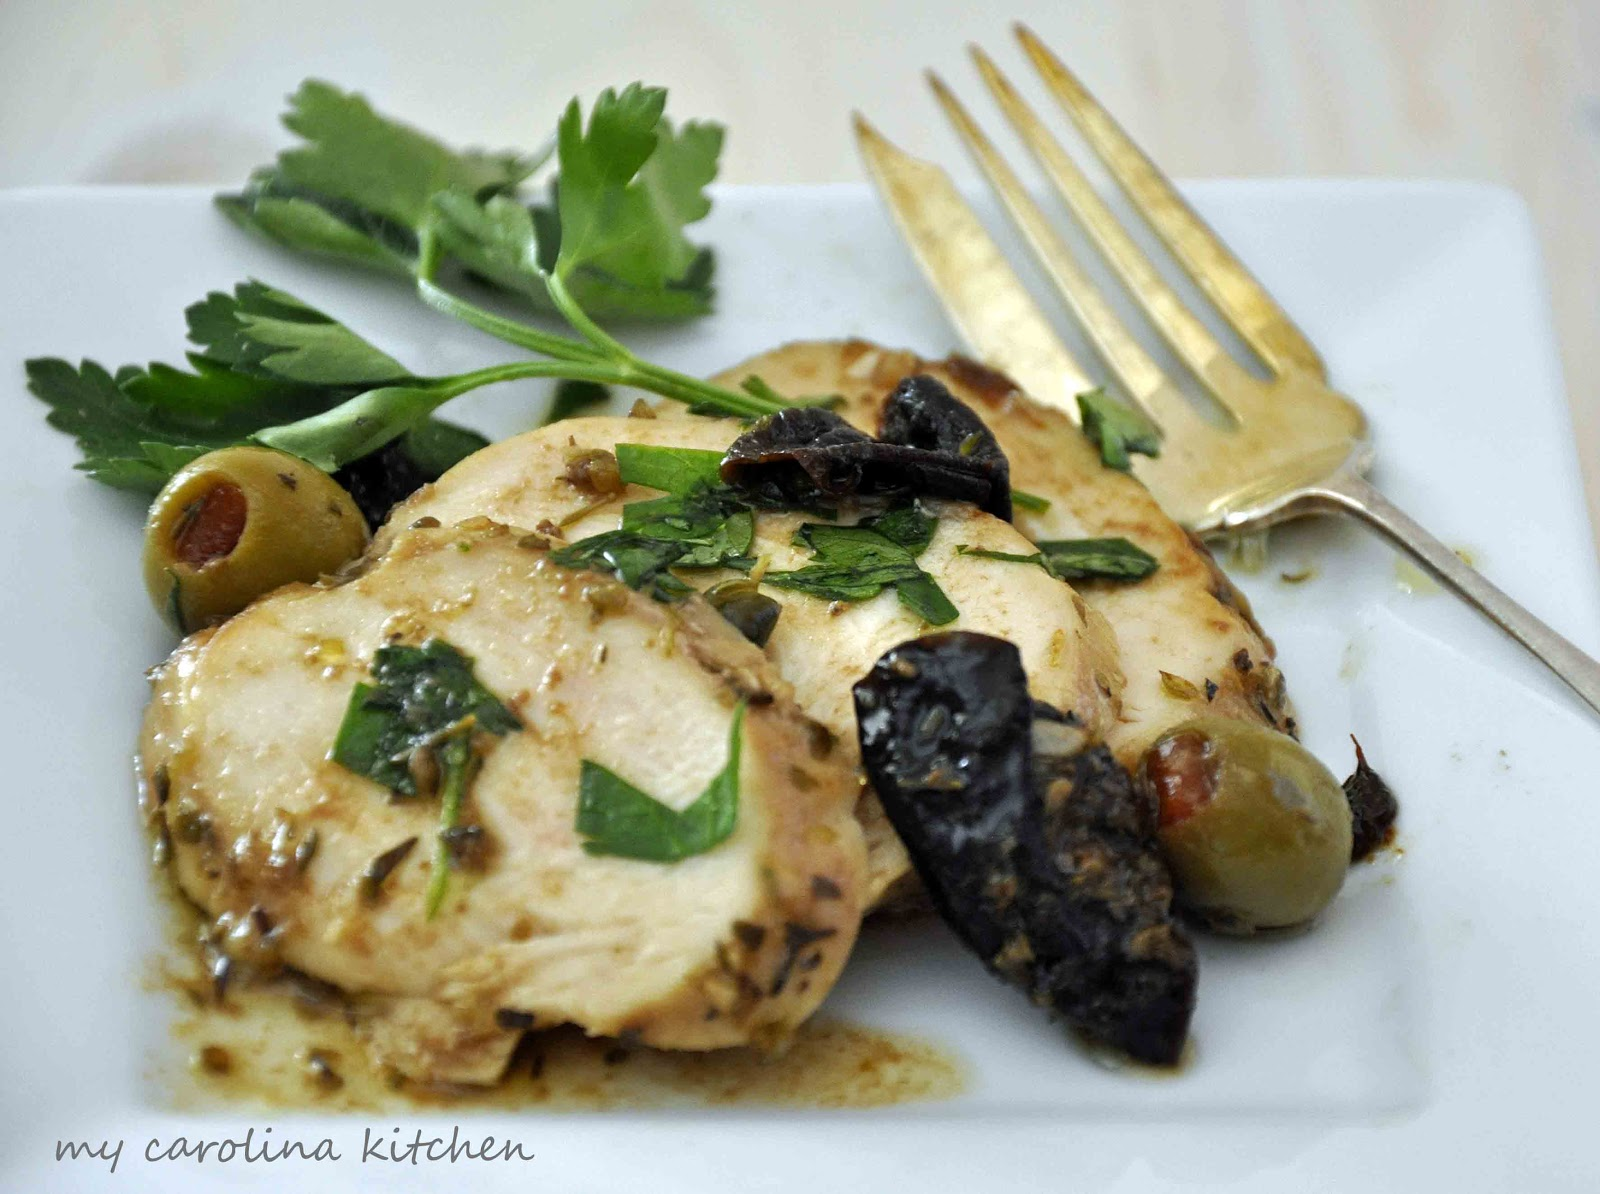 Chicken Marbella recreated into cocktail food for a party buffe t